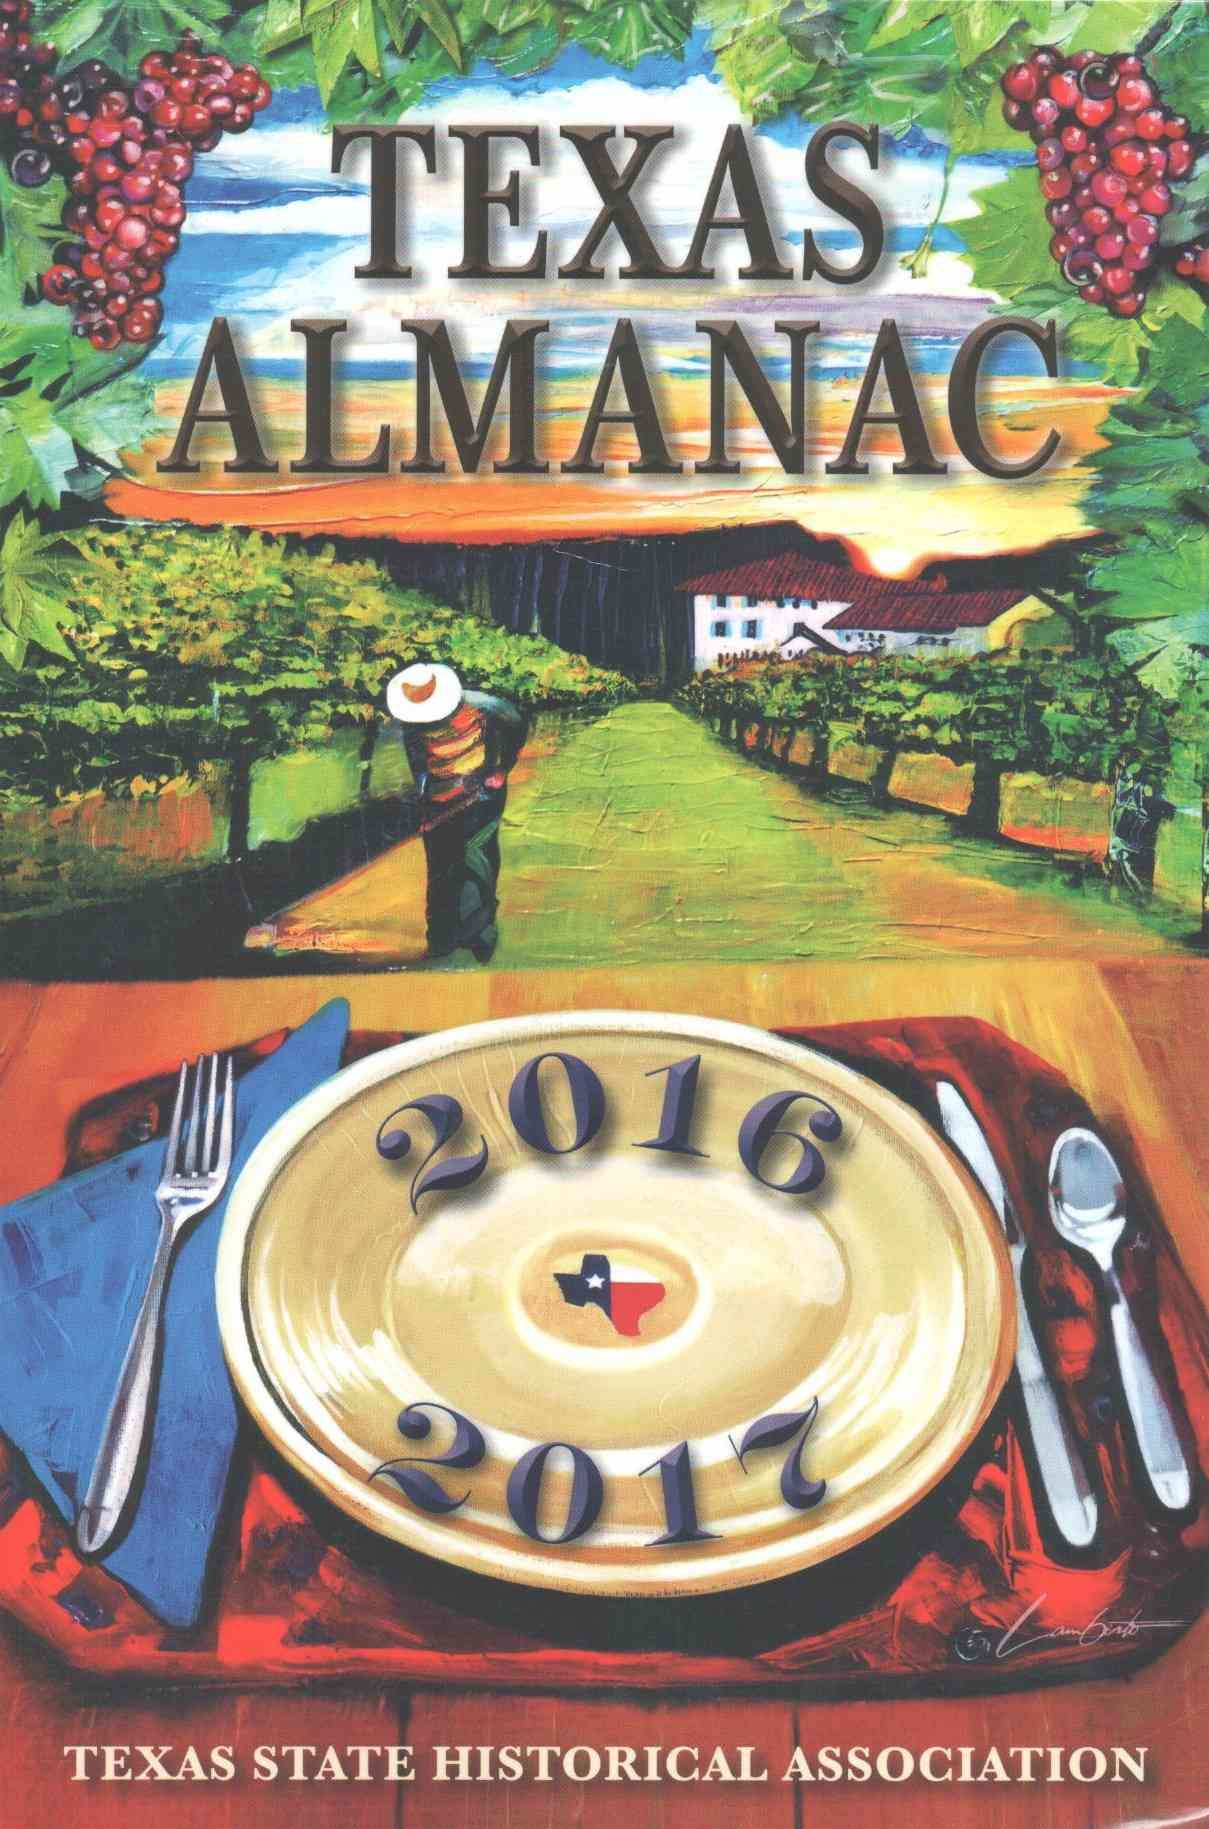 Texas Almanac 20162017 Texas, Dallas morning news, Almanac